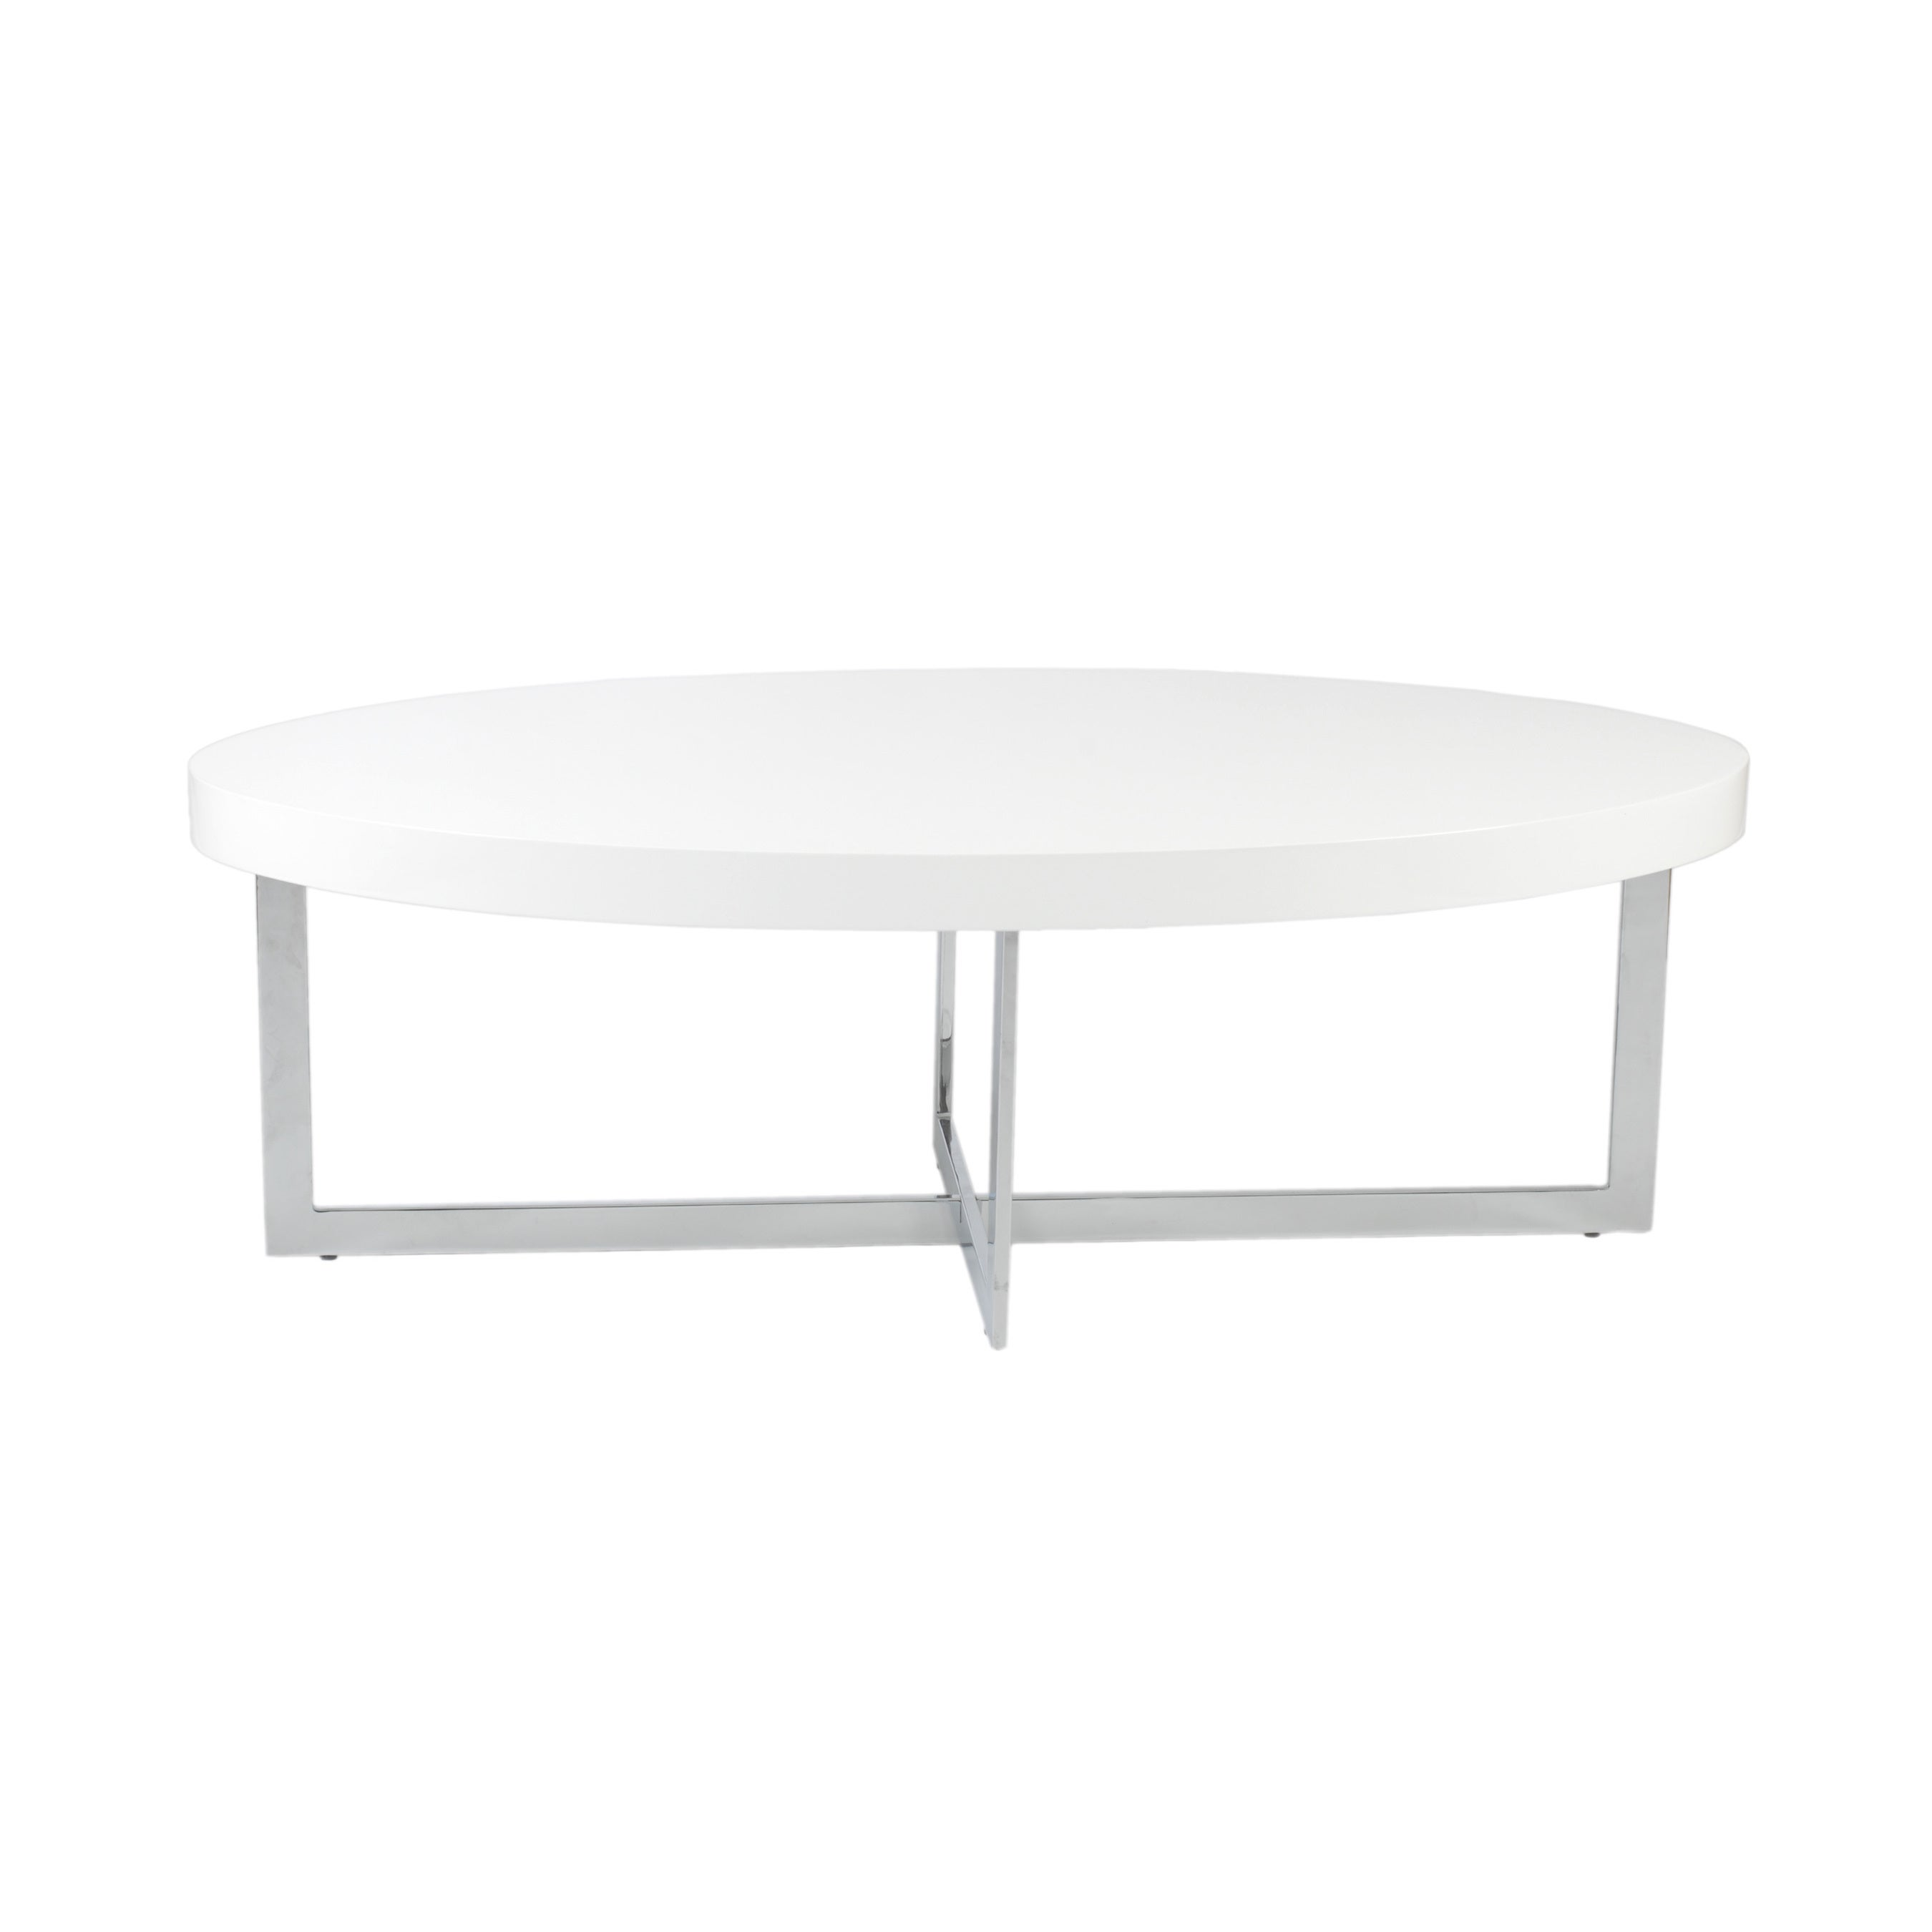 Euro Style Oliver Coffee Table White Lacquer/ Chrome (Whi...